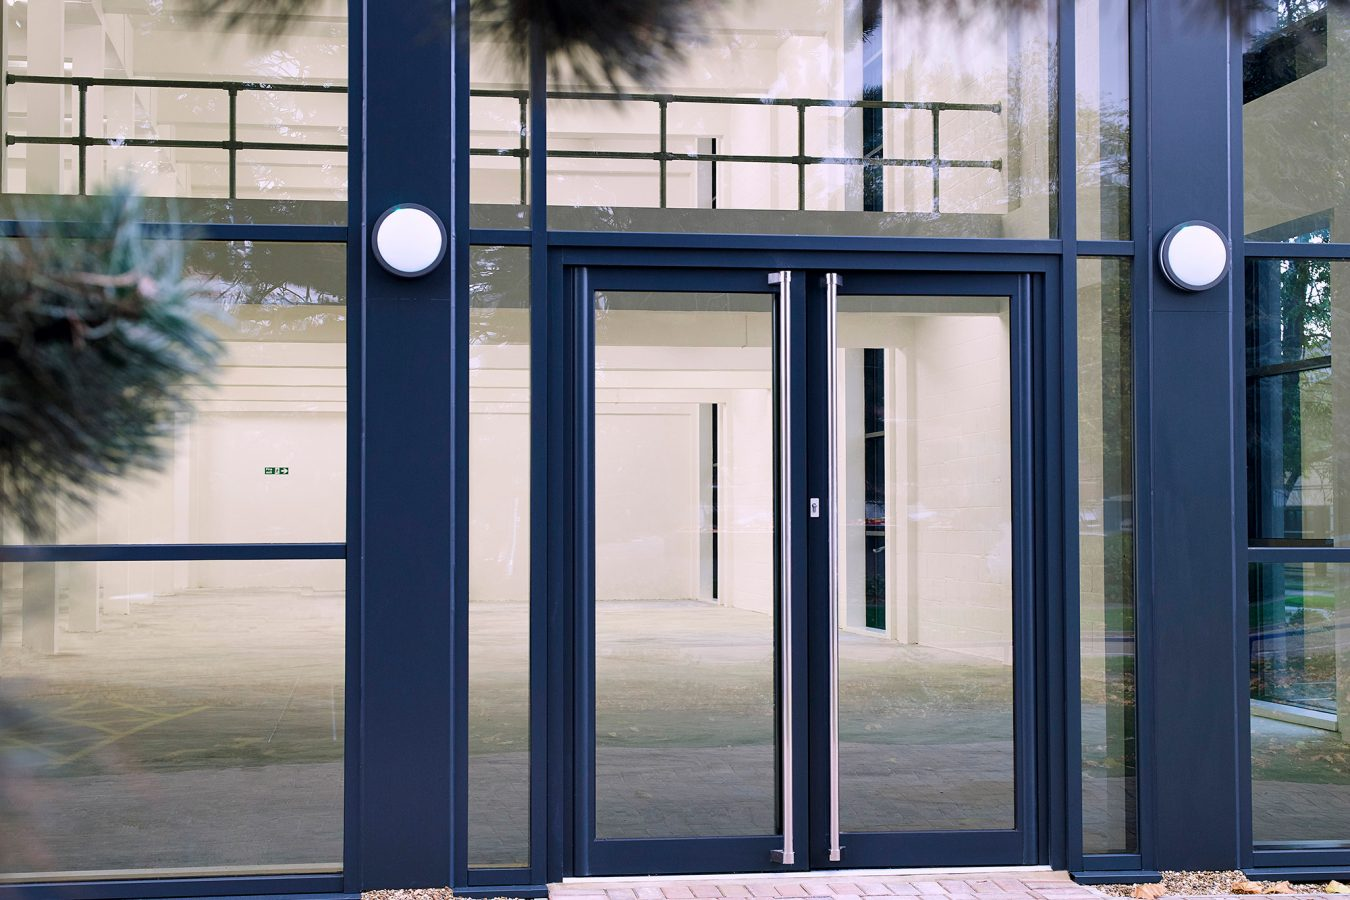 Refurbished metal doors and cladding for industrial units near London.